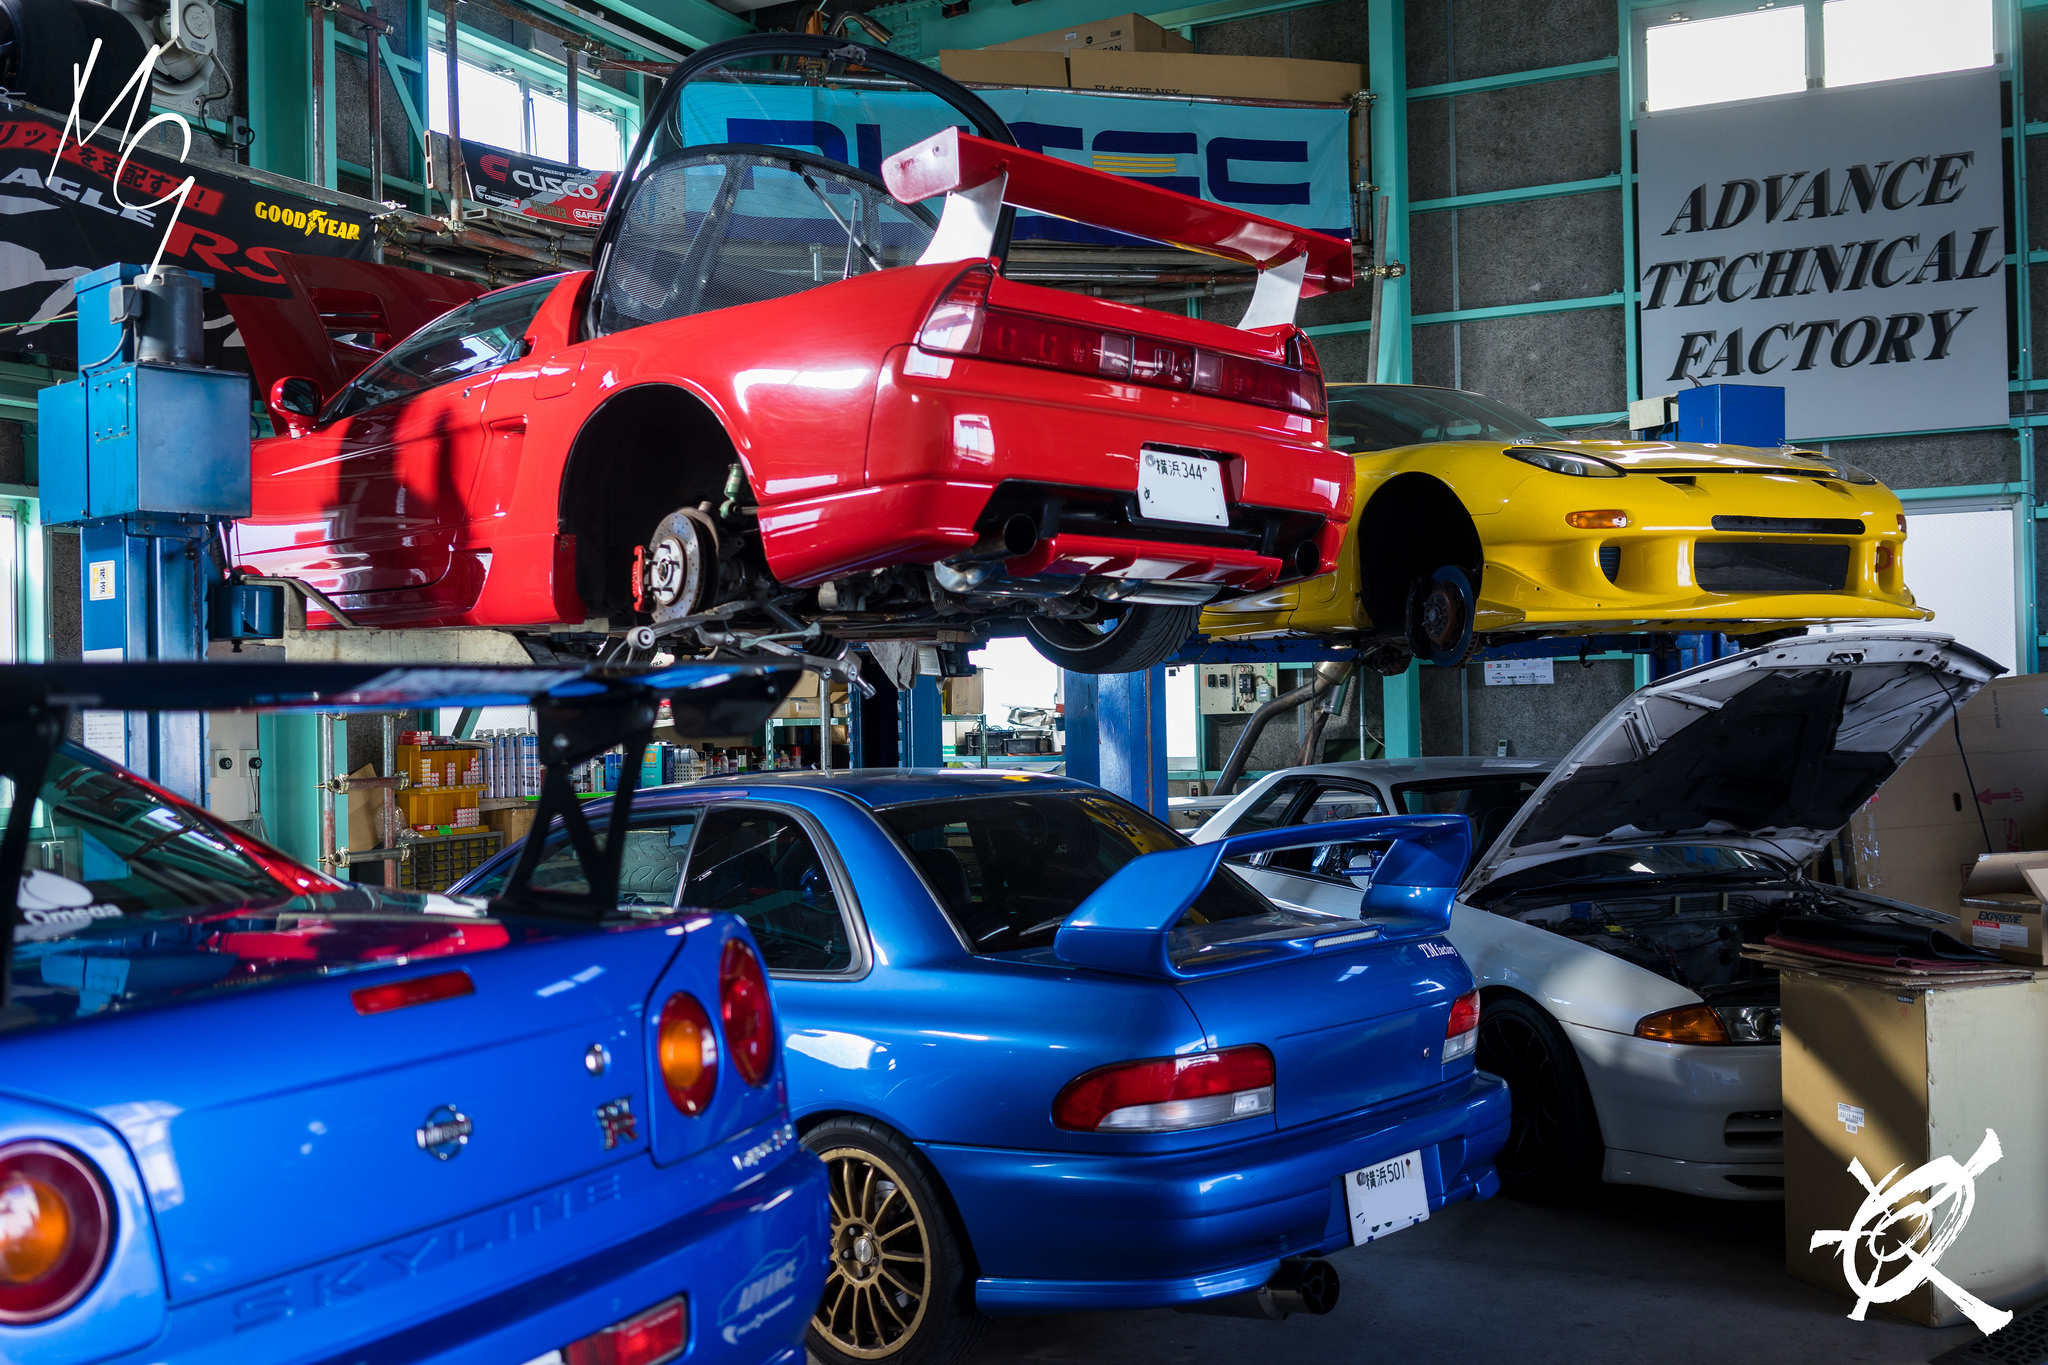 The 10 Car Garage of a (almost) 16 years old car guy